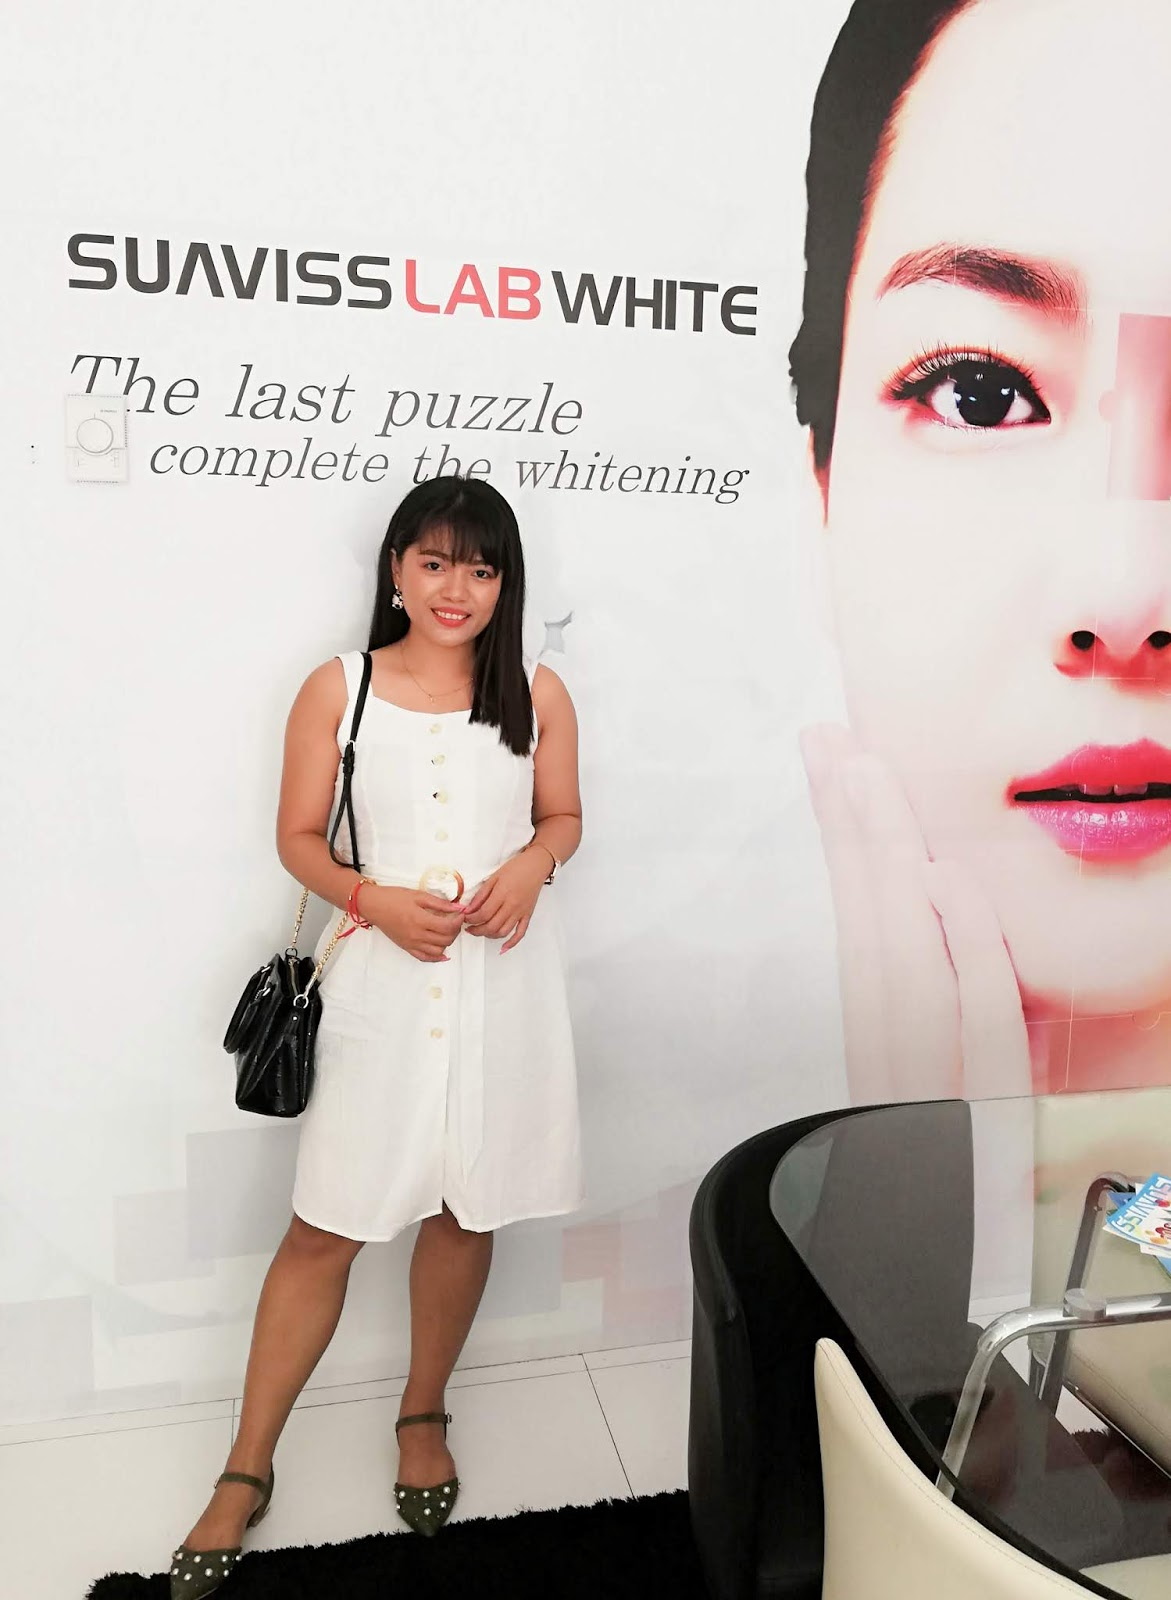 BEAUTY LAB WHITENING BY SUAVISS LAB WHITE - FIRST SESSION OF WHITENING SOLUTION FULL BODY TREATMENT